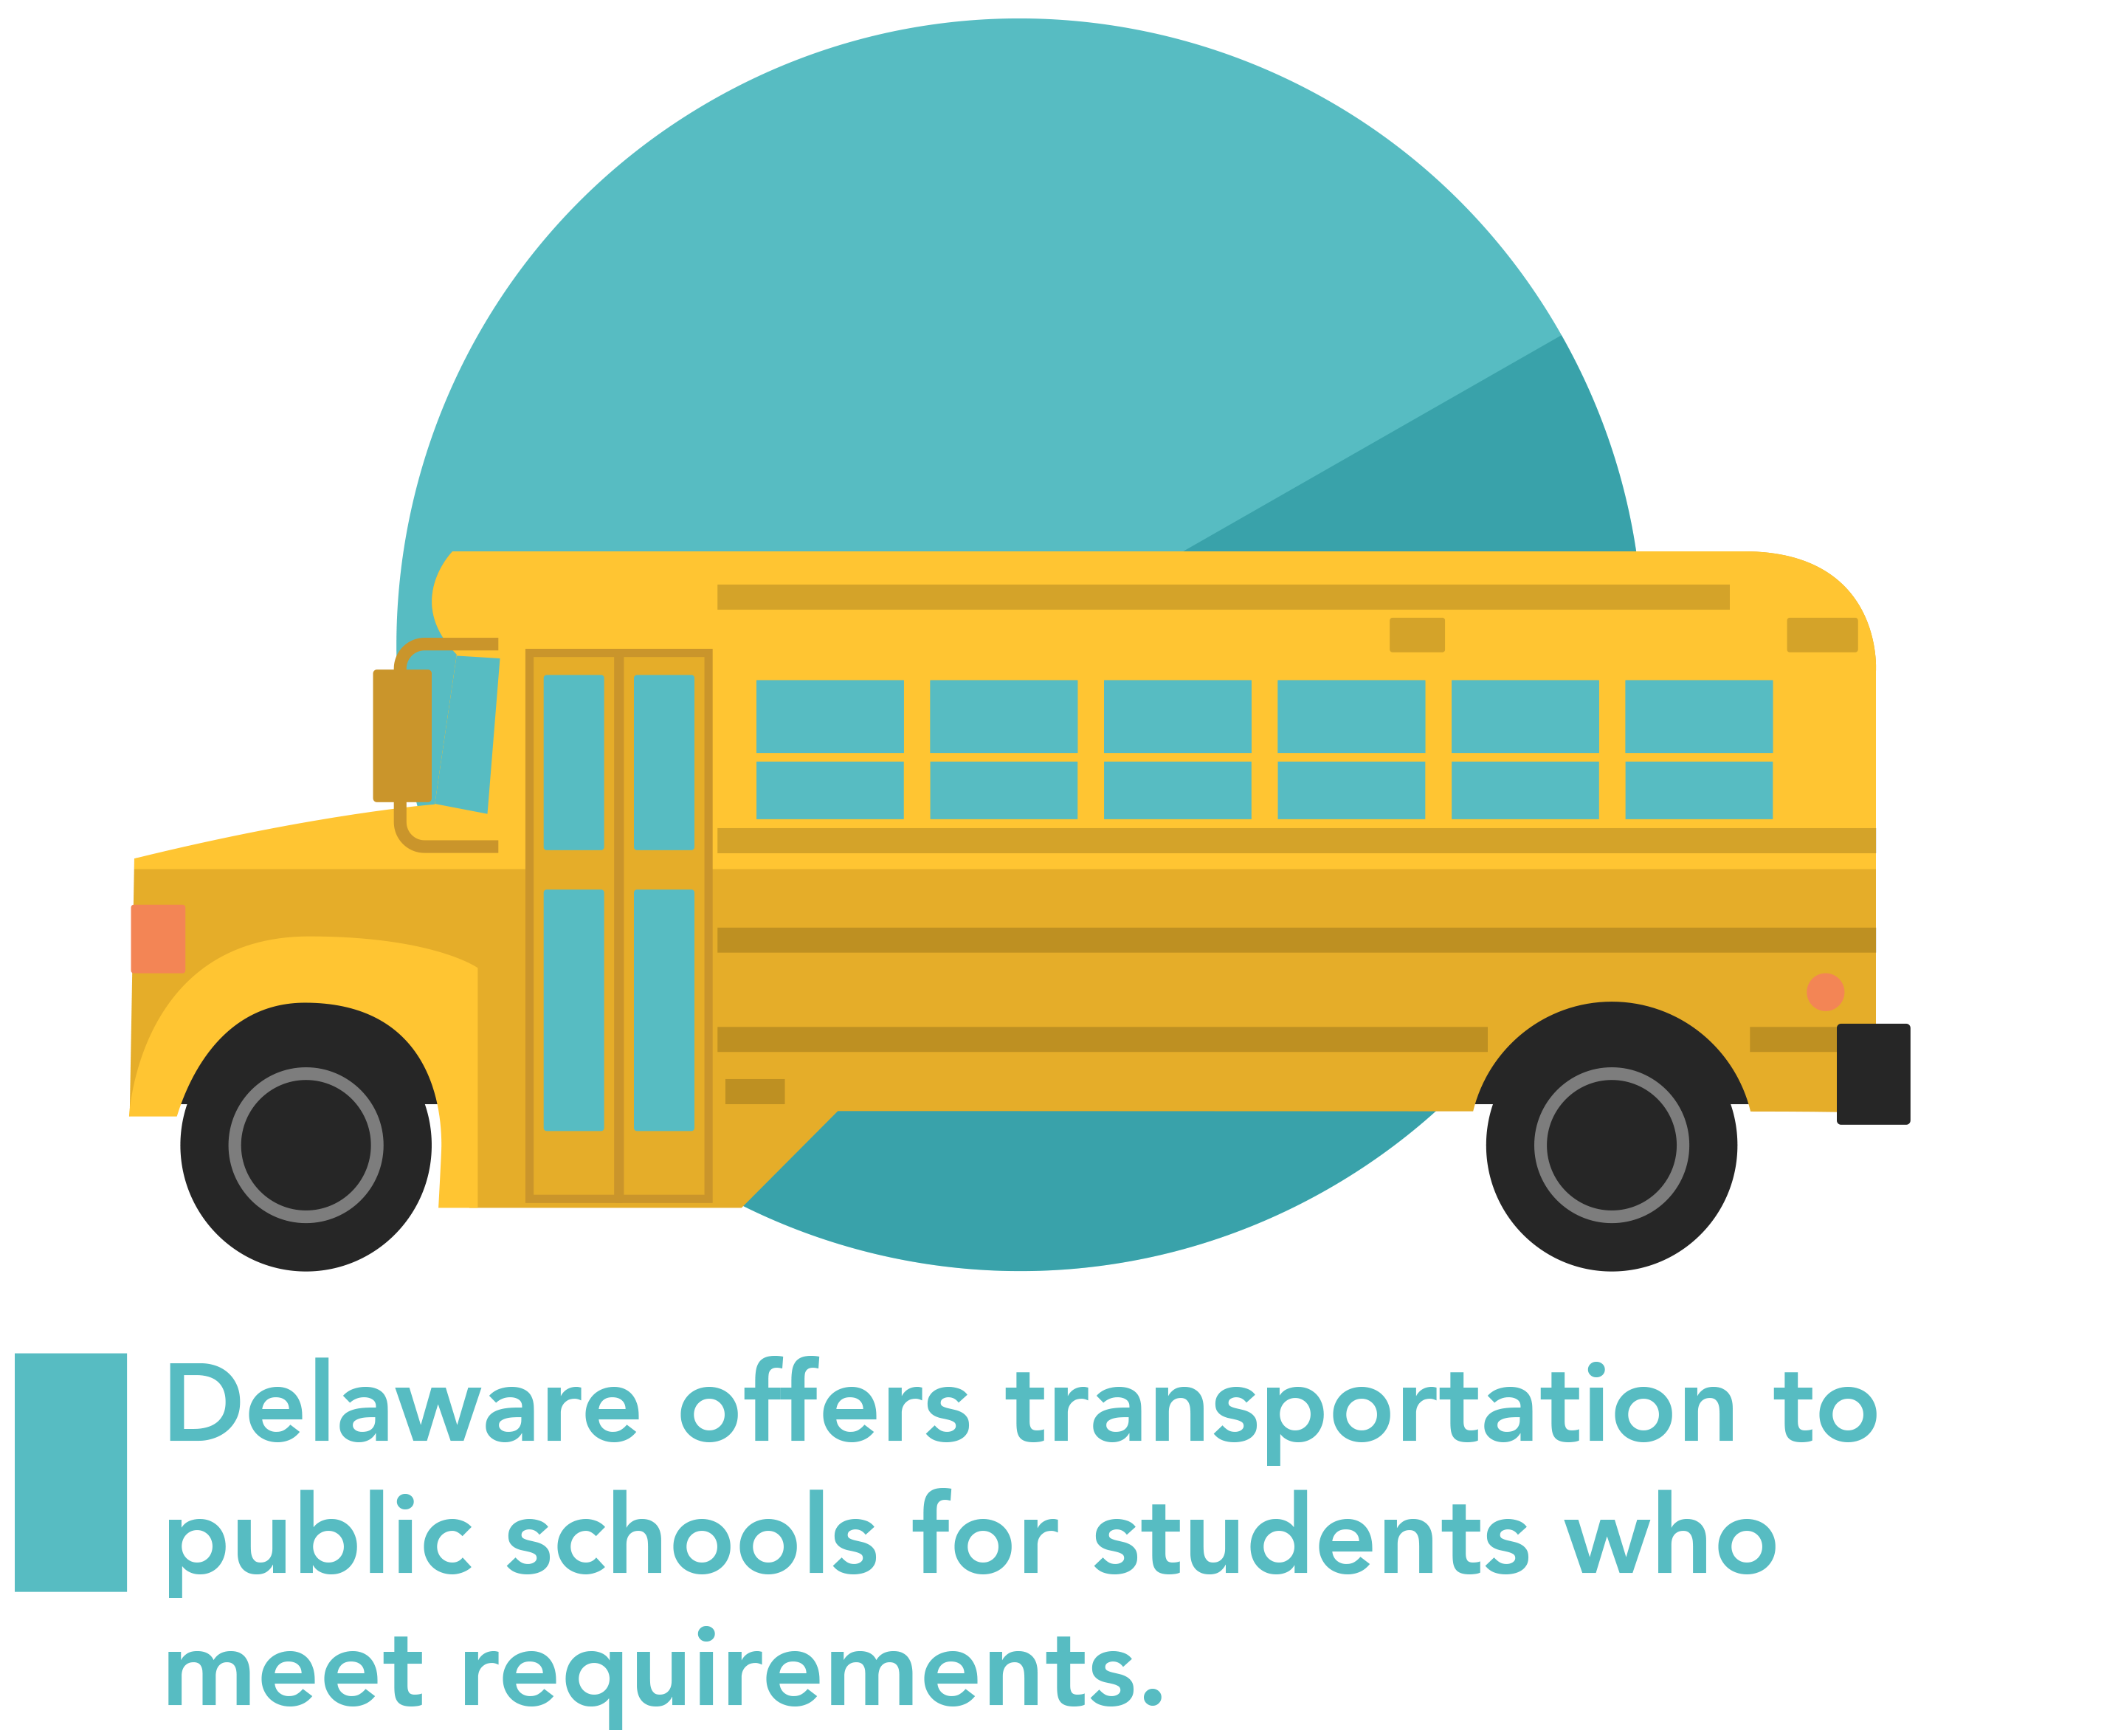 A graphic of a bus representing transportation for public school students who meet requirements.